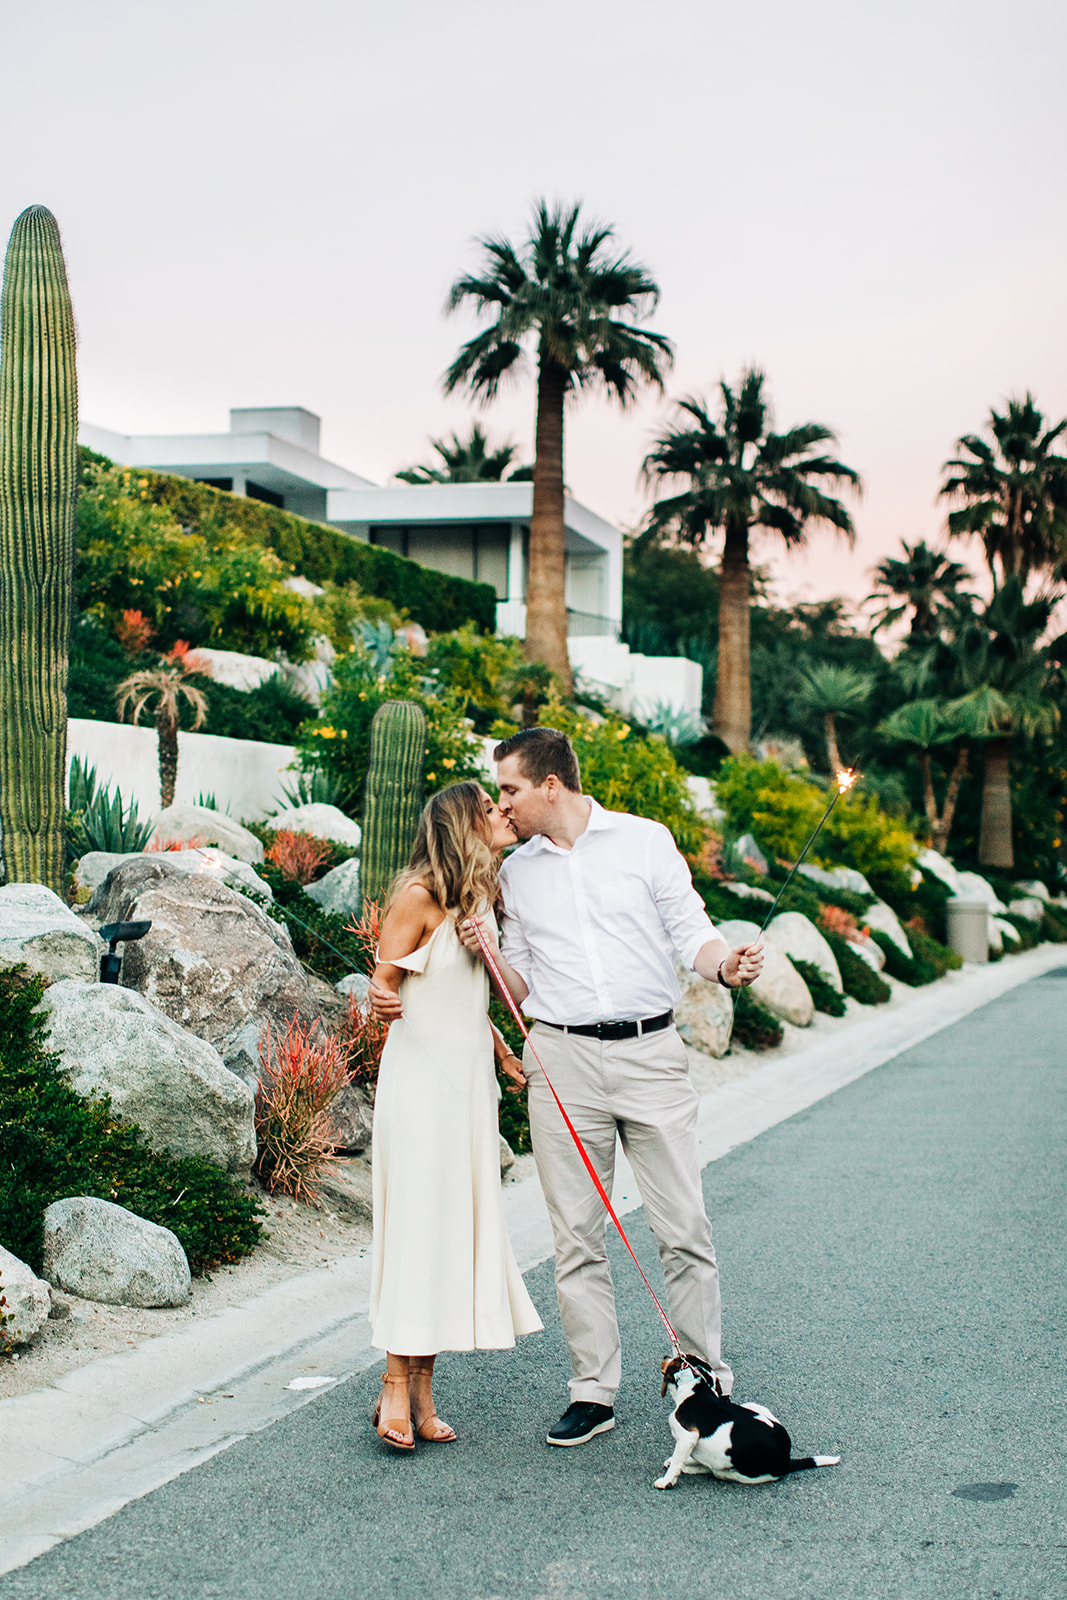 Paulina-Drew_Palm-Springs-Engagement-Photos_Clarisse-Rae_Southern-California-Wedding-Photographer-54